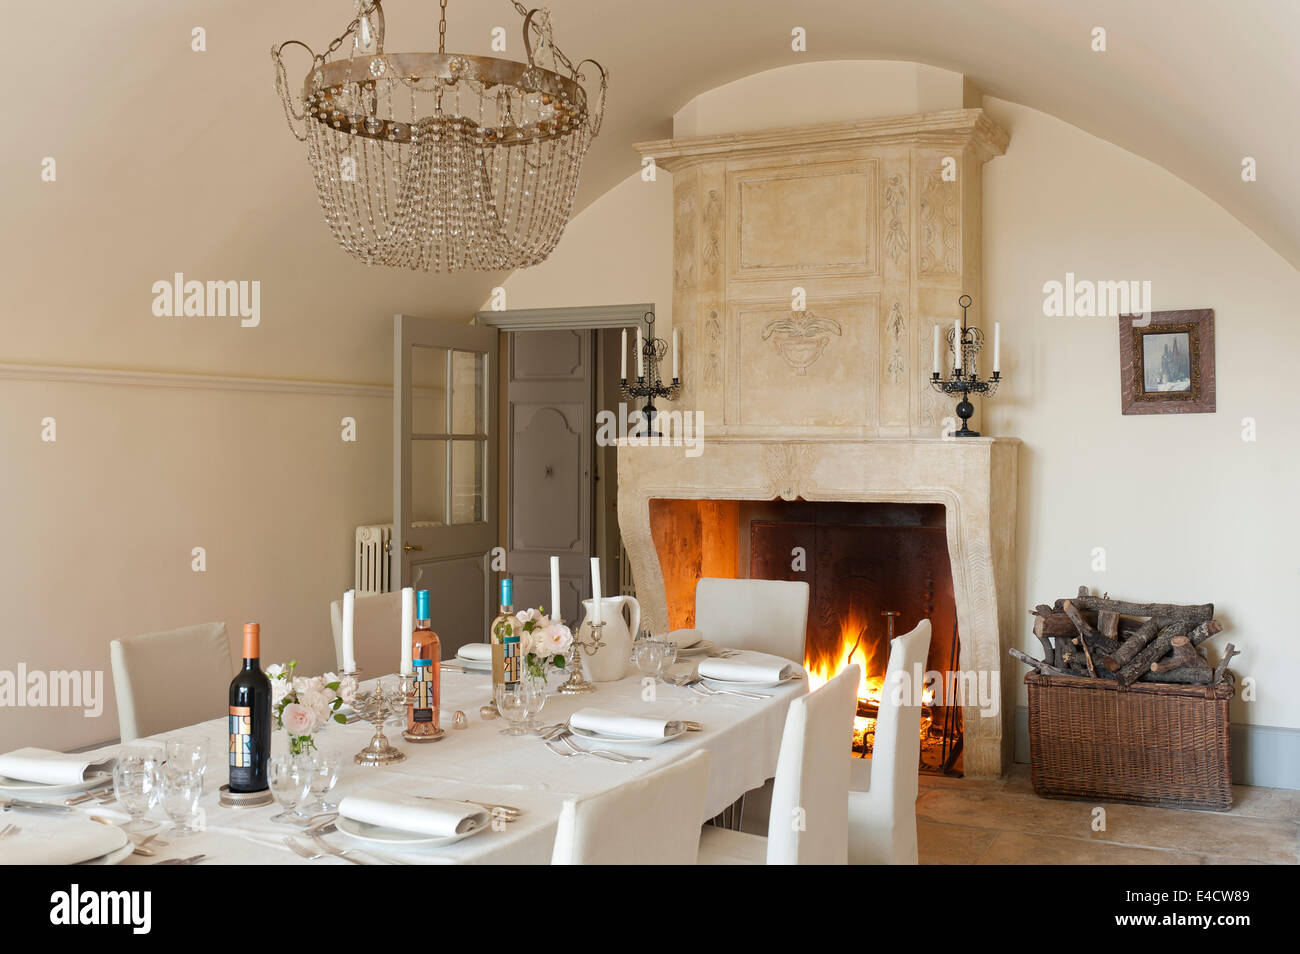 Large Open Stone Fireplace In Vaulted Dining Room With 19th Century Crystal Light And Candelabra